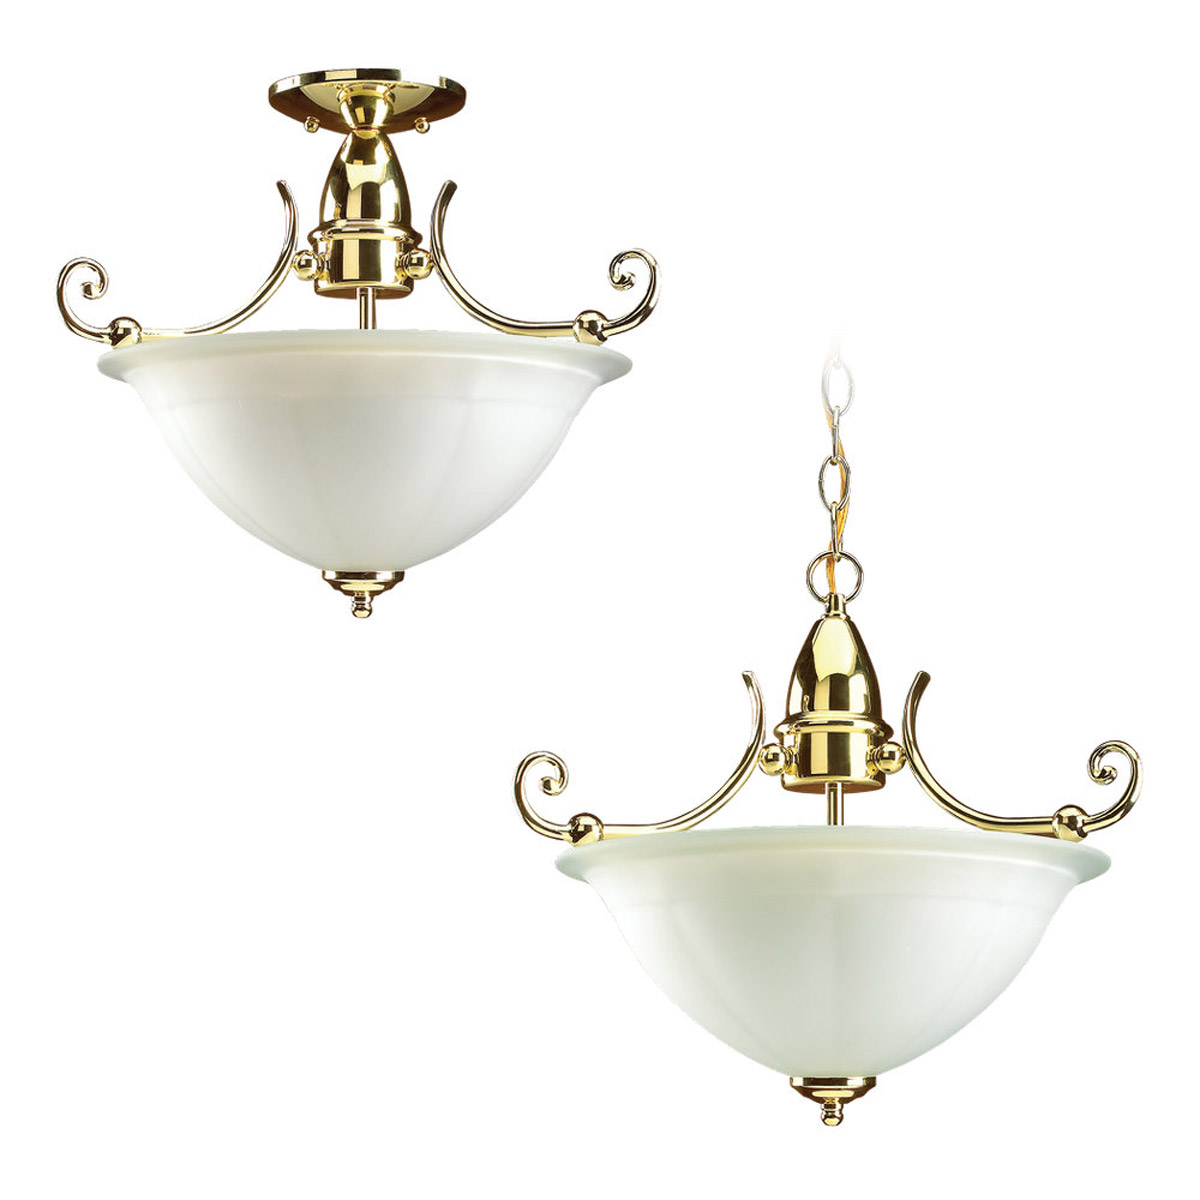 Sea Gull Lighting Canterbury 2 Light Pendant Convertible in Polished Brass 51050-02 photo